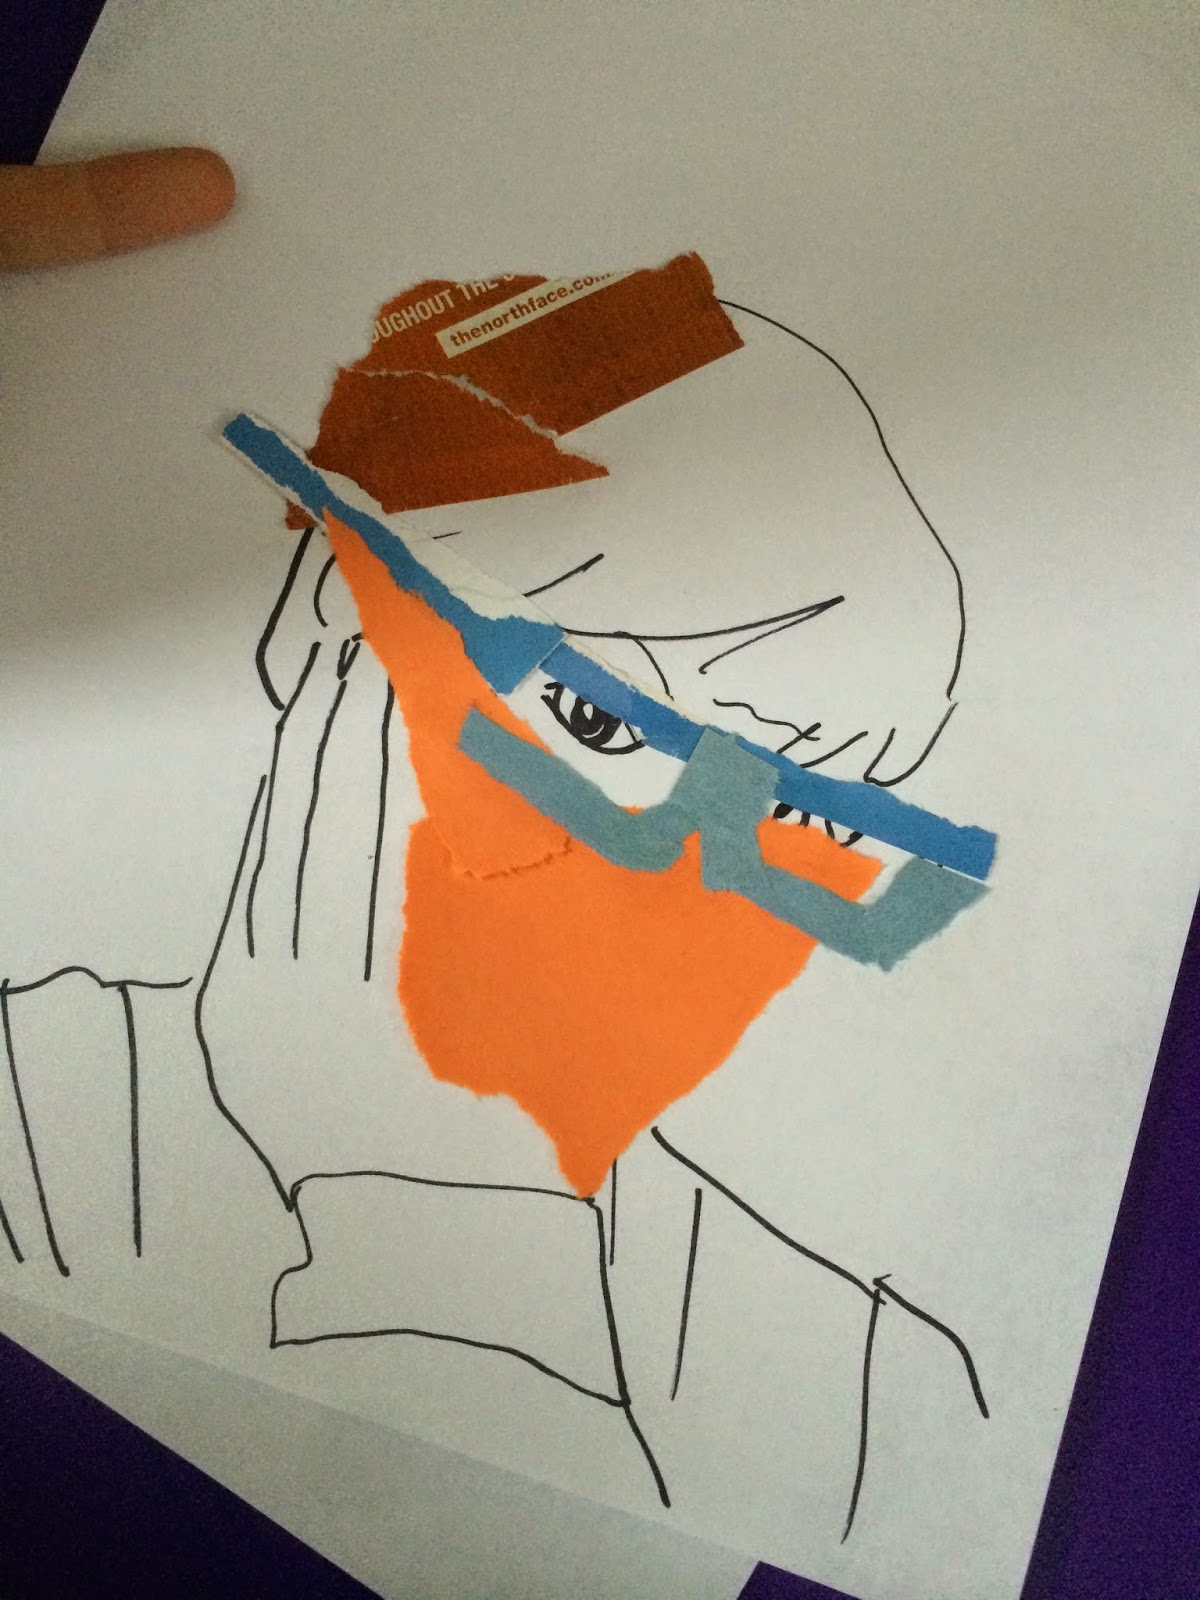 Students Then Placed A Blank White Sheet Of Paper On Top Their Contour Drawings And Traced Onto The This Was Used As To